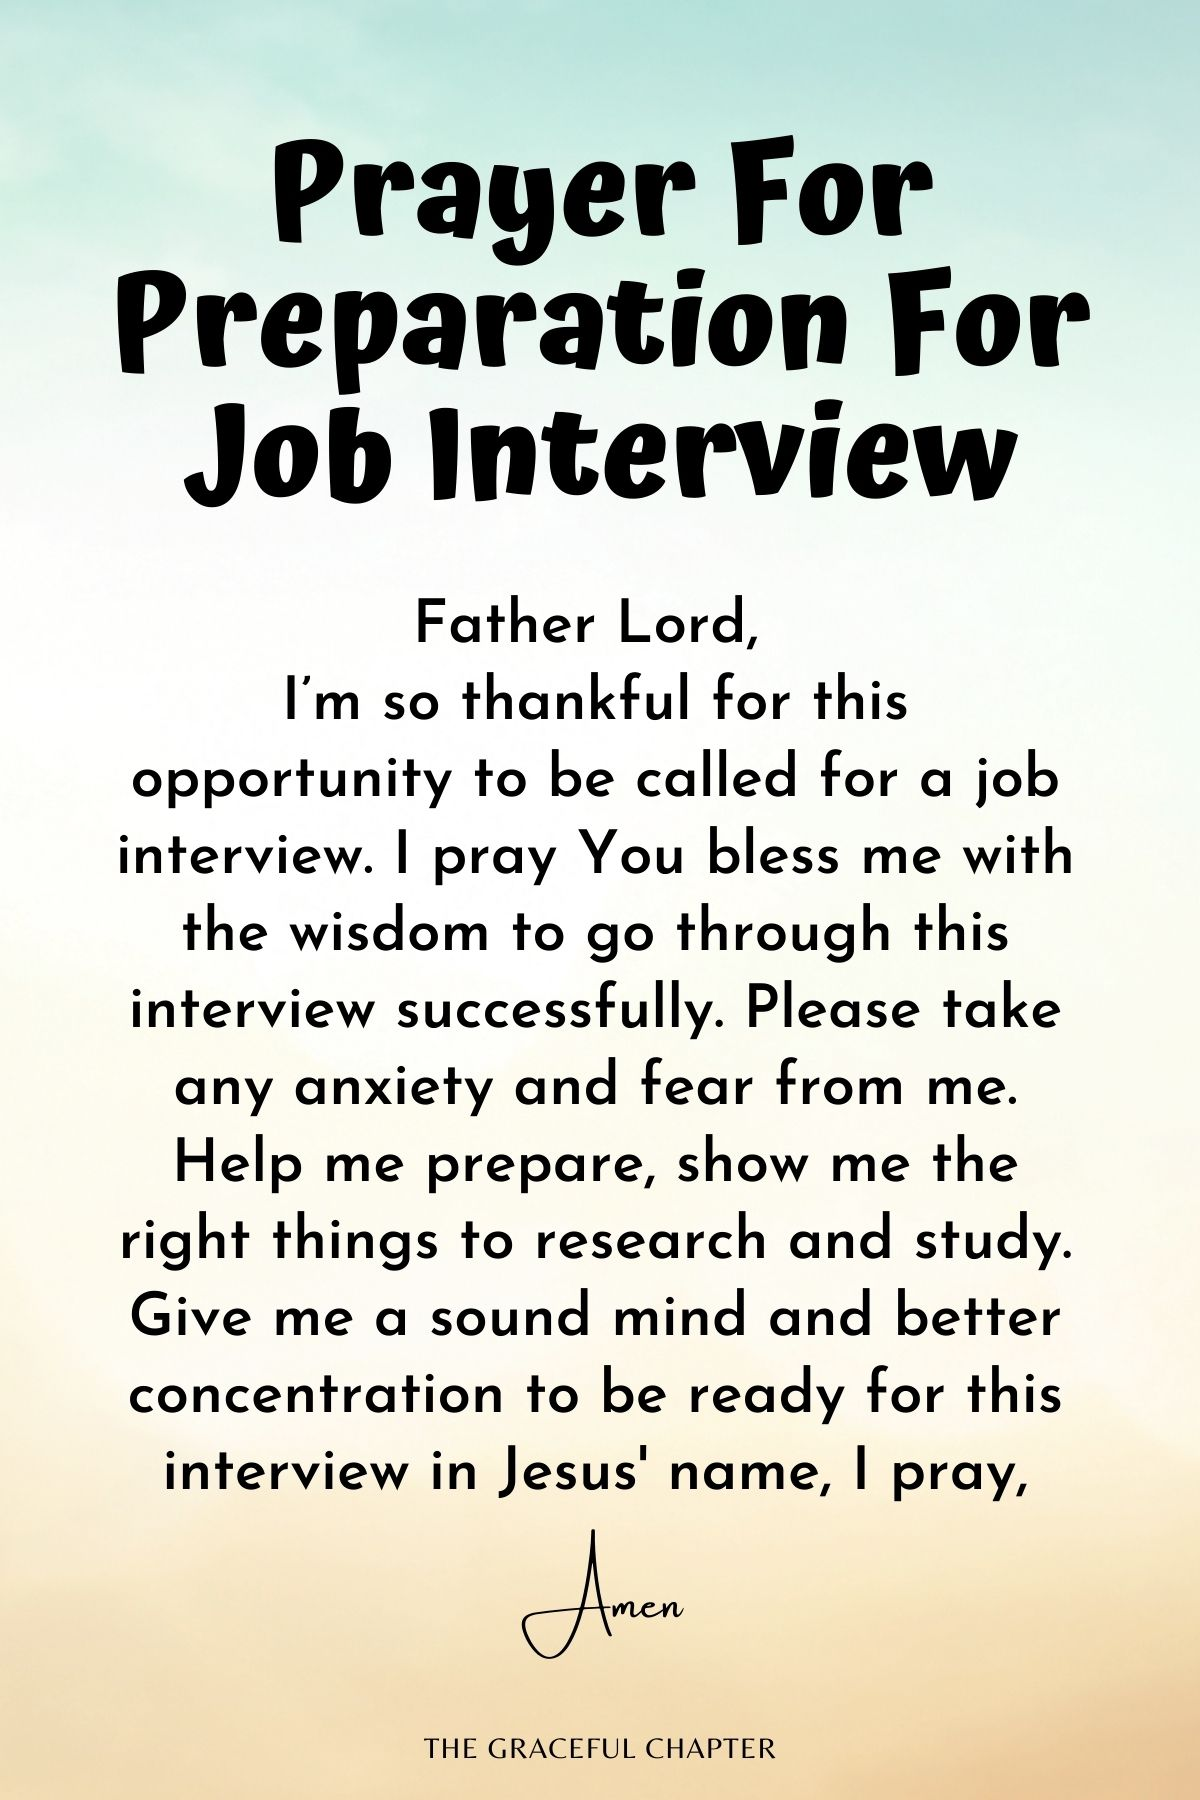 Prayer for preparation for a job interview